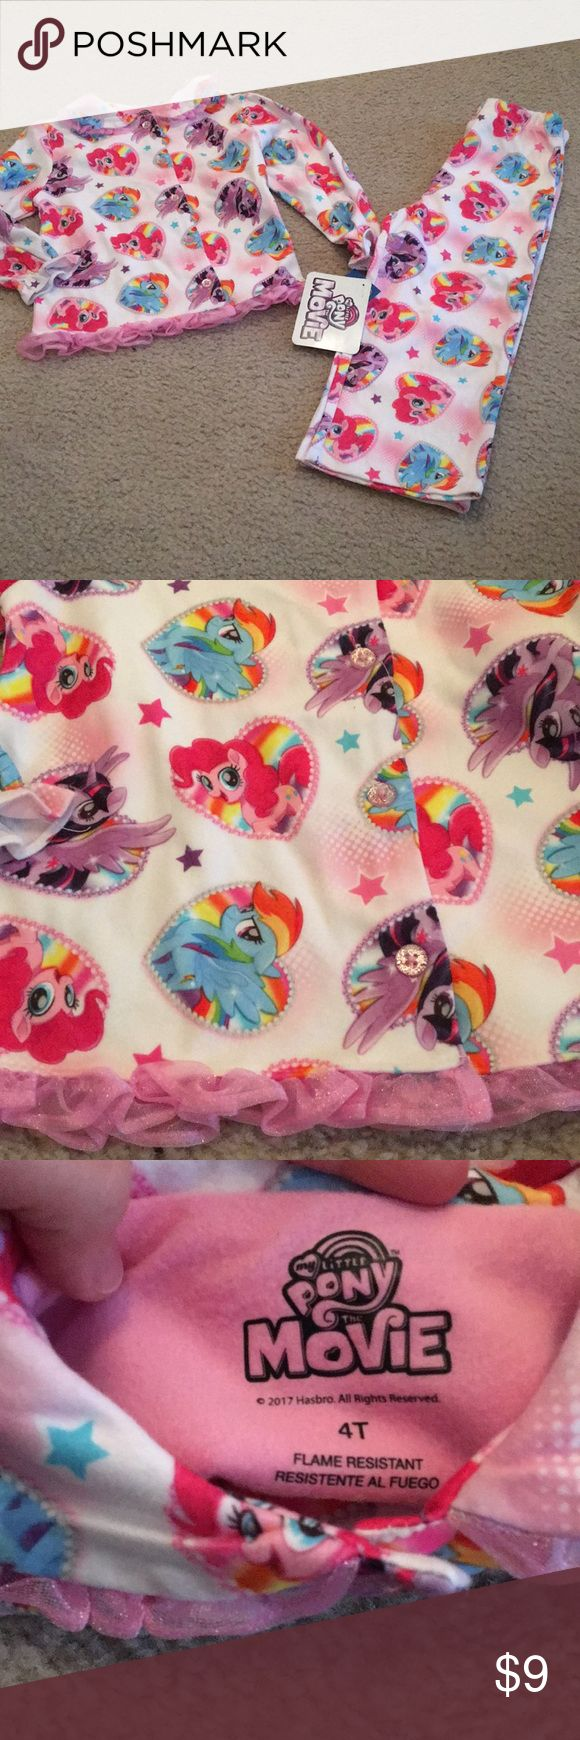 NWT My Little Pony pajama set 4t NWT My Little Pony pajama set size 4t My Little Pony Pajamas Pajama Sets